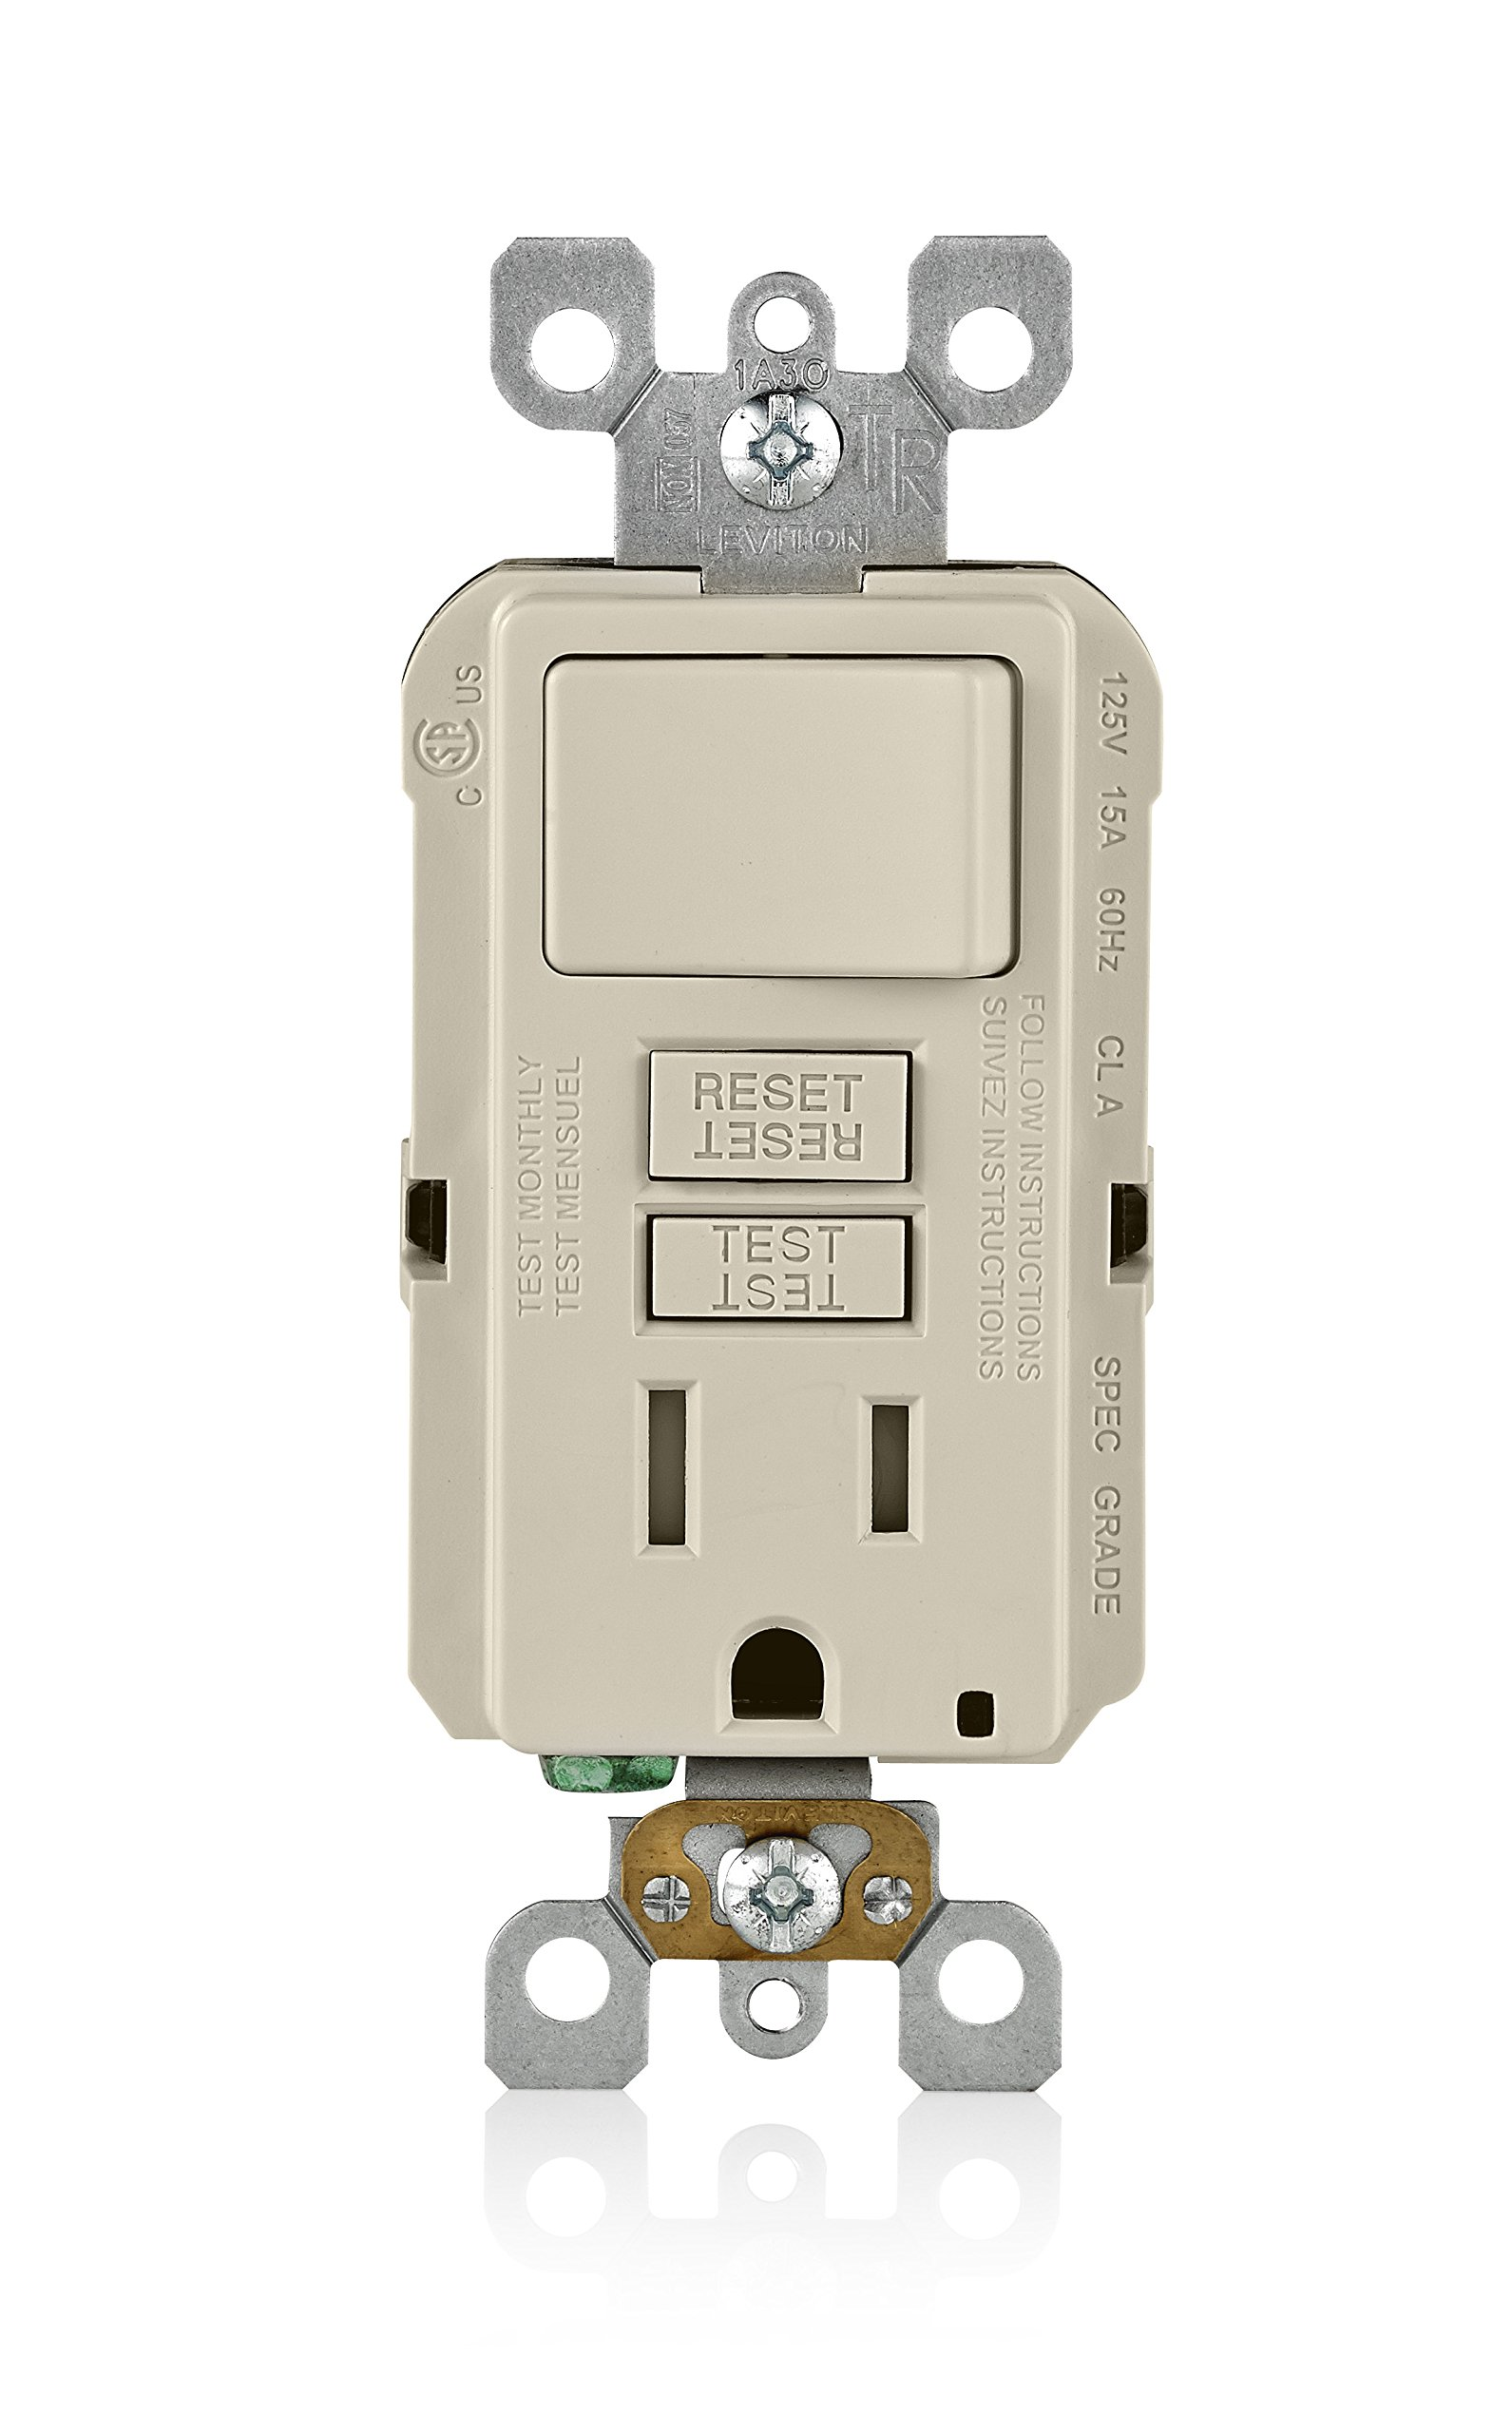 Leviton GFSW1-T 15-Amp Self-Test Smartlockpro Slim GFCI Combination Switch Tamper-Resistant Receptacle with LED Indicator, 20-Amp Feed-Through, 3 Pack, Light Almond